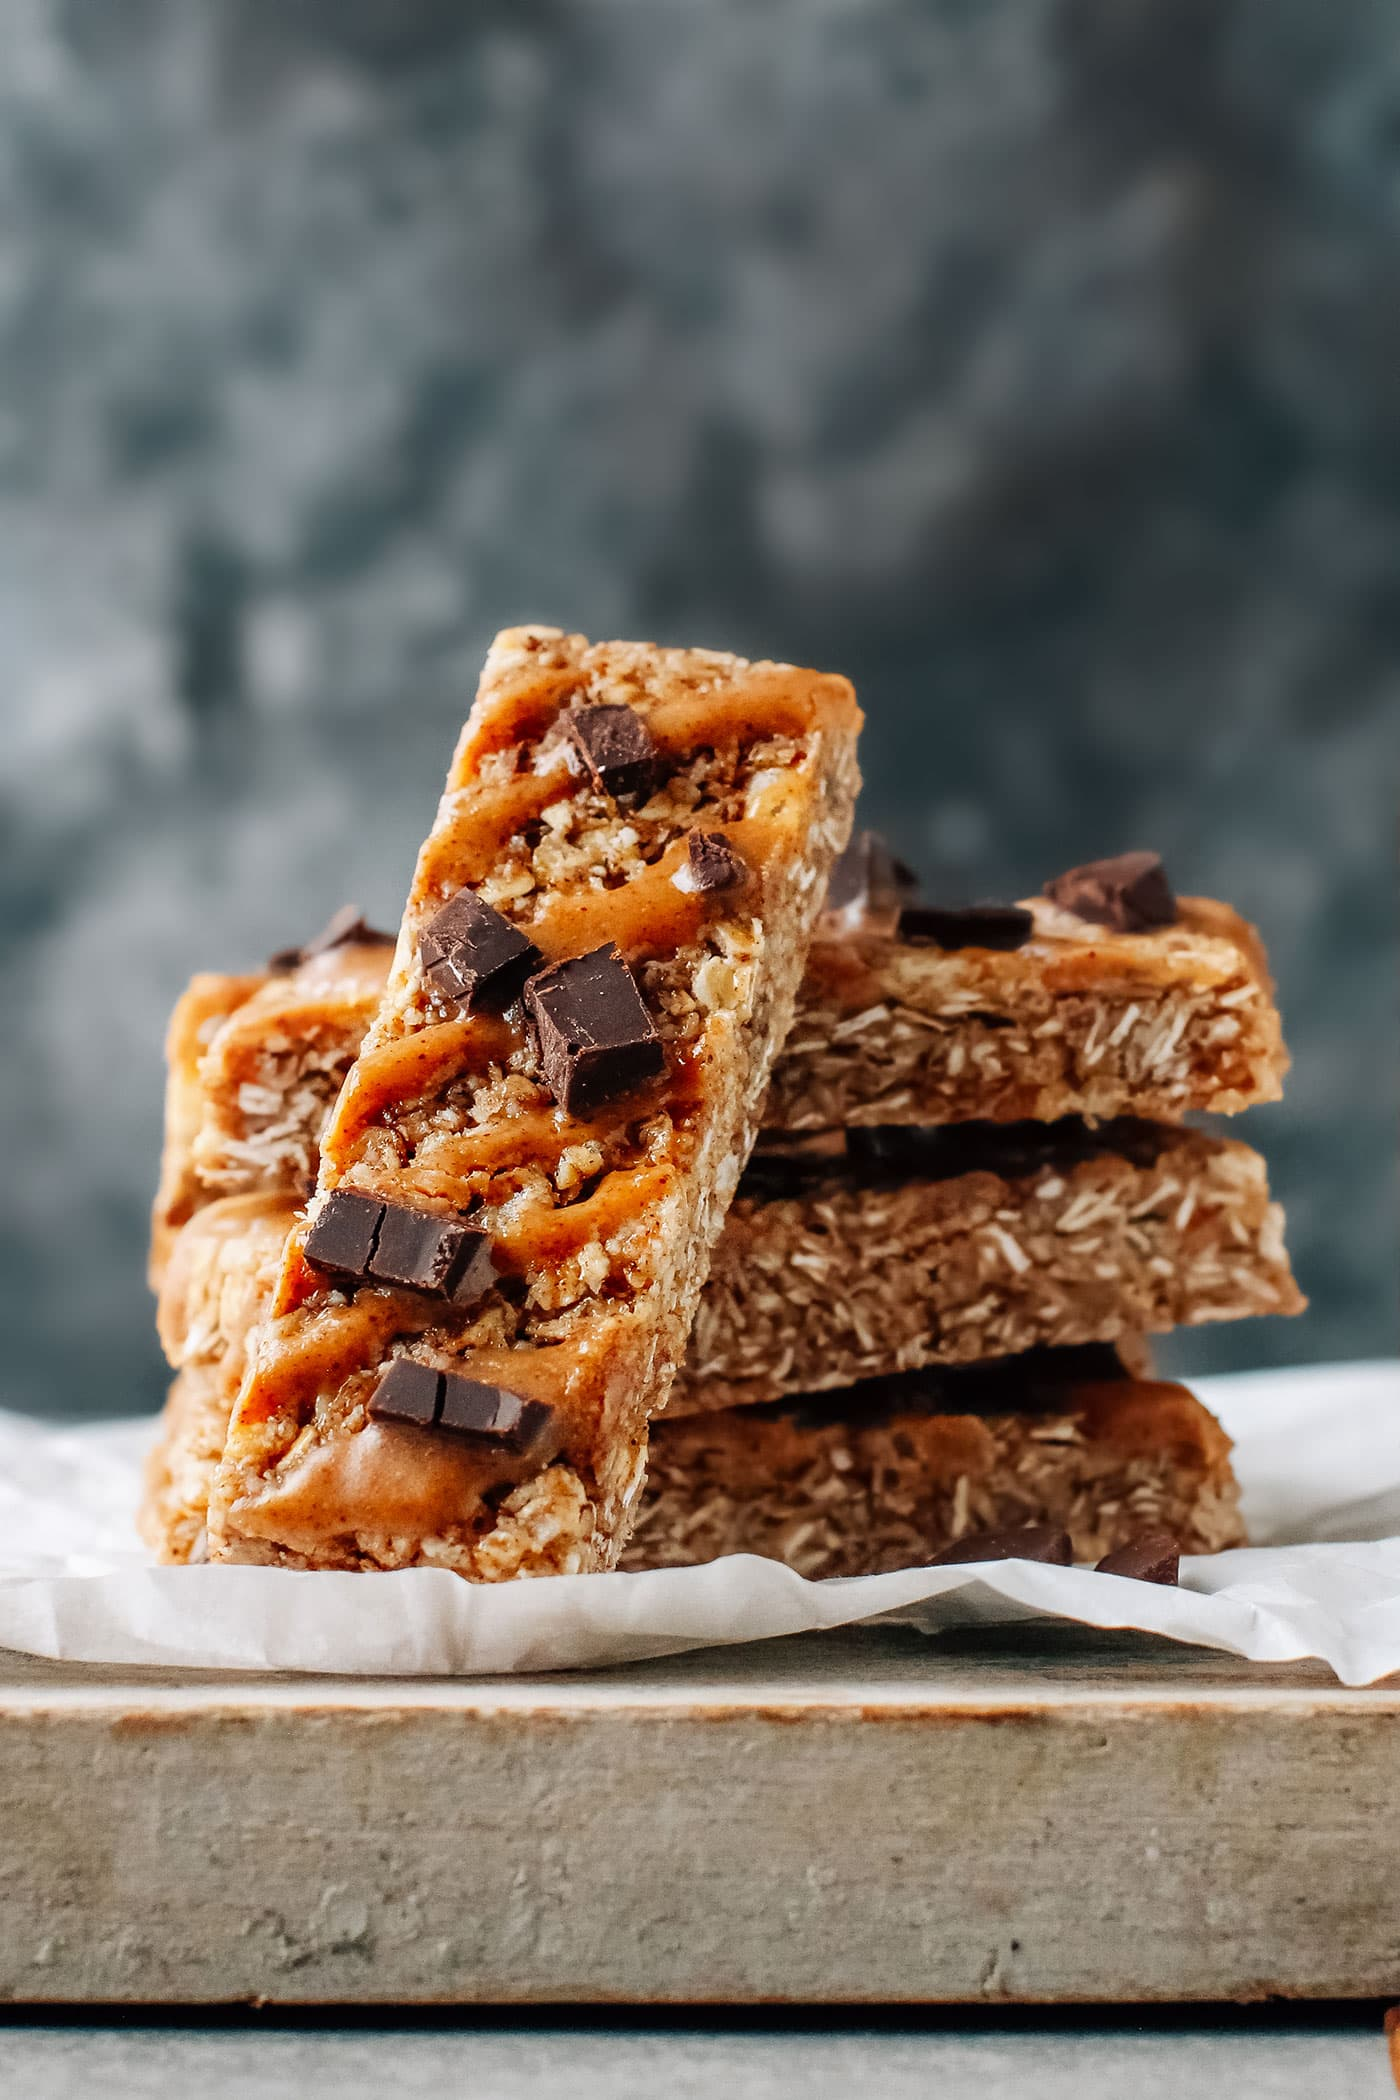 Almond Crisps Drizzled With Chocolate